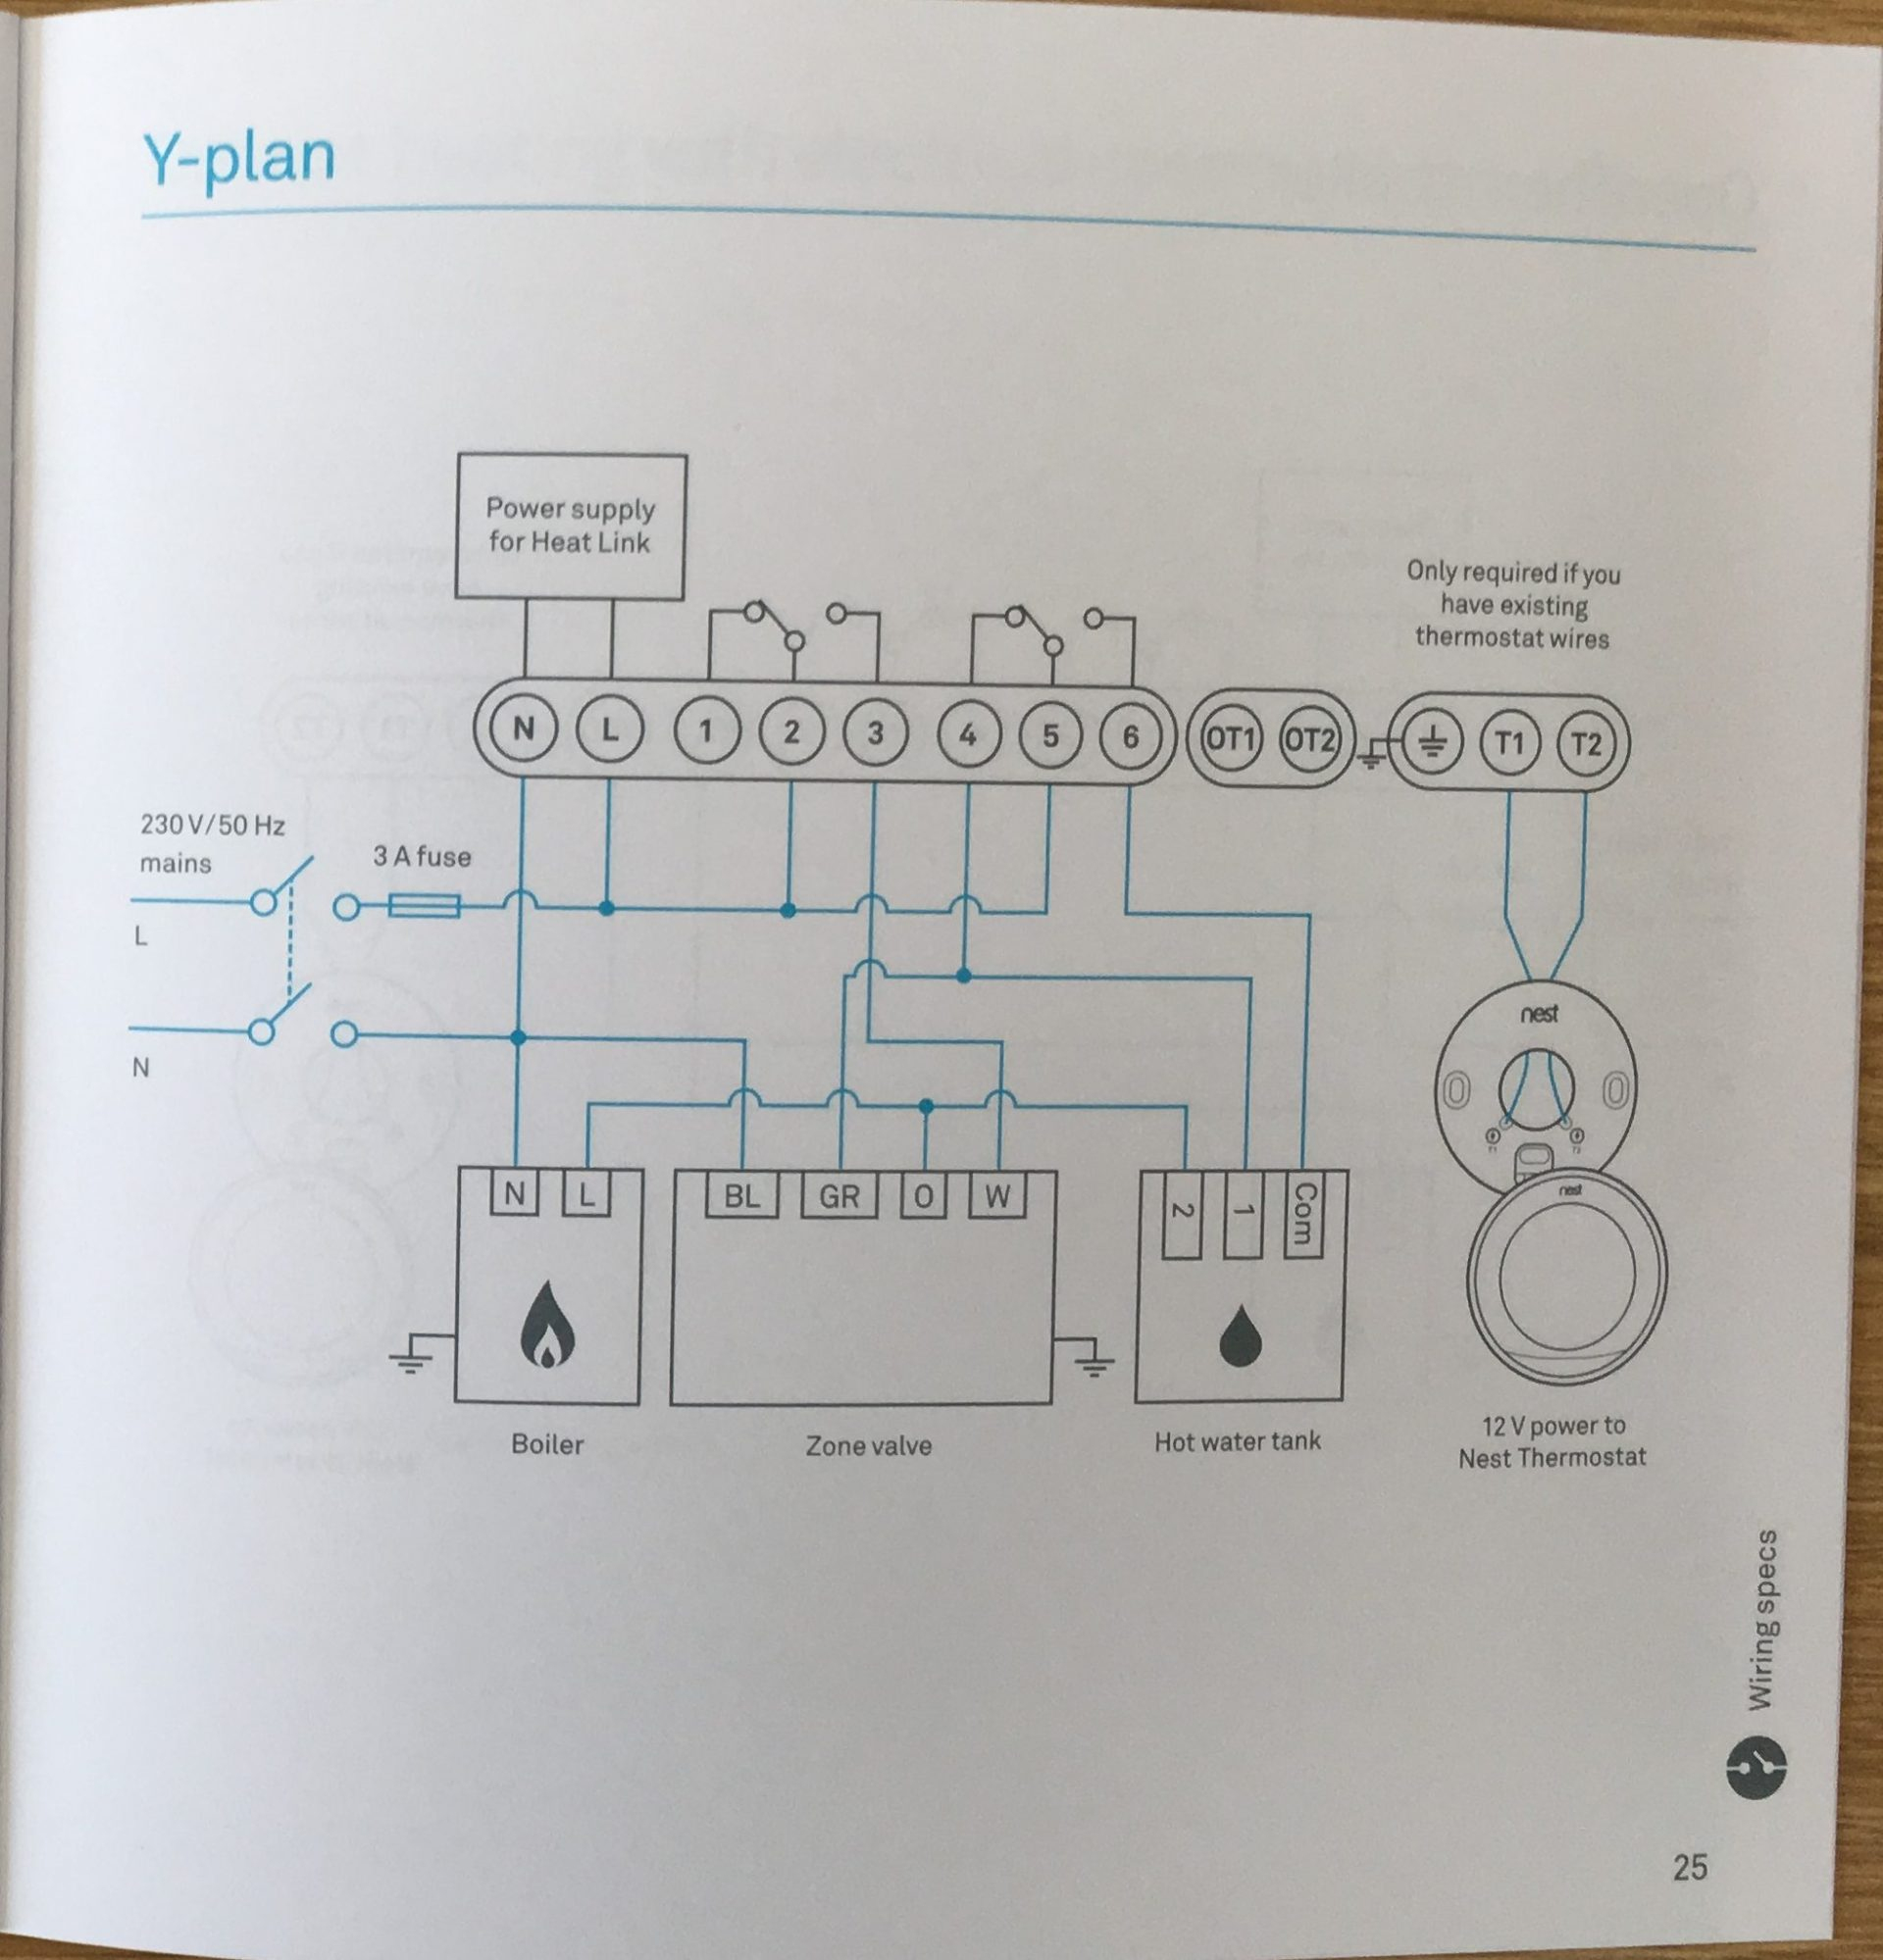 How To Install The Nest Learning Thermostat (3Rd Gen) In A Y-Plan - 5 Wire Thermostat Wiring Diagram Nest